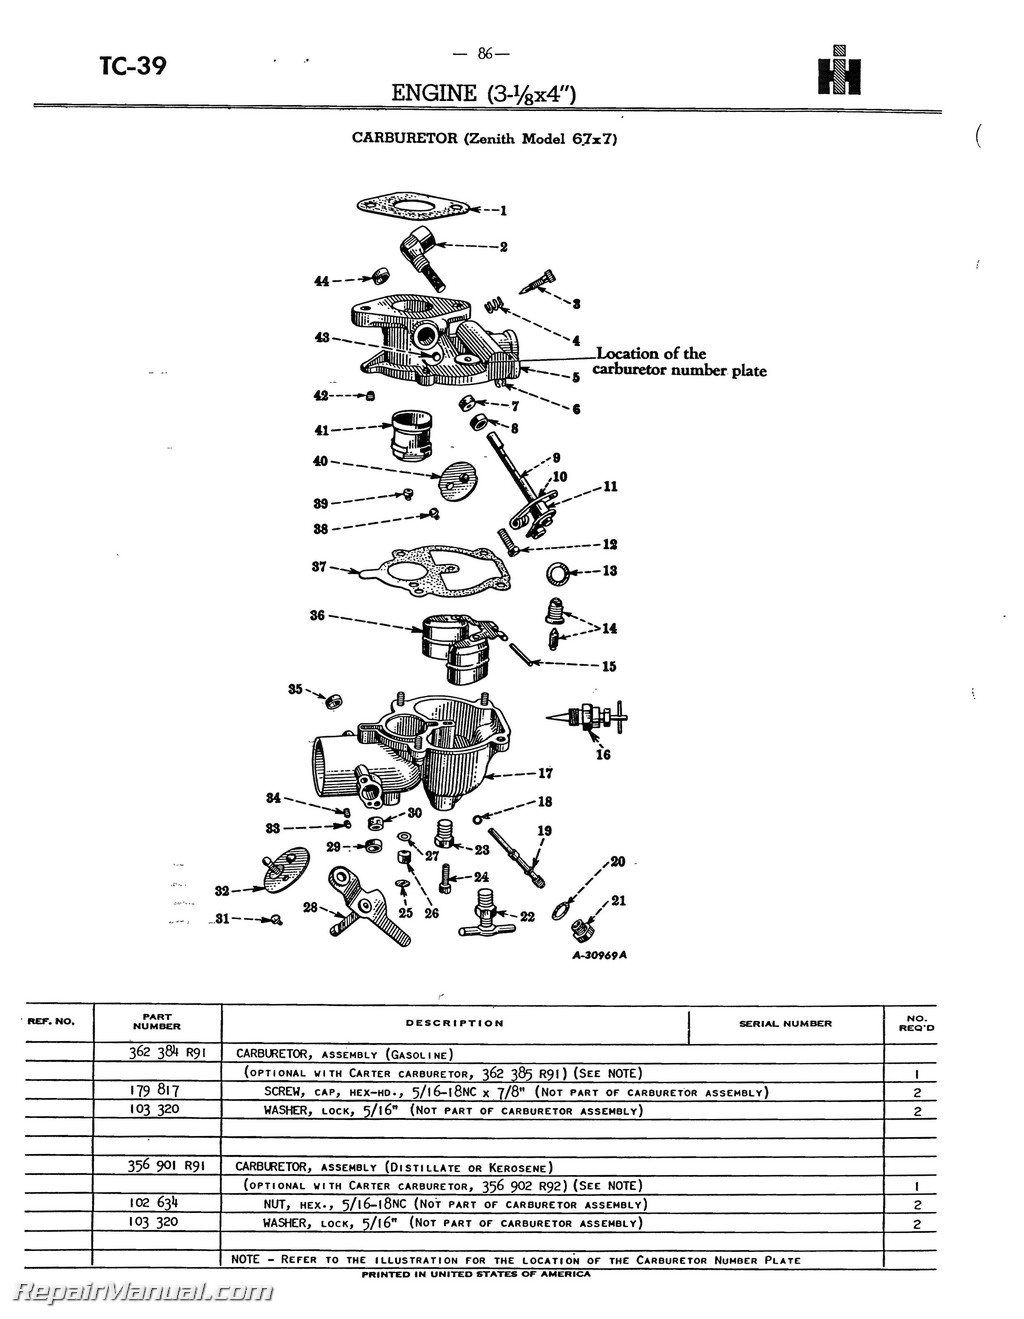 farmall m parts diagram clutch farmall super a av a-1 av-1 tractor parts manual farmall m steering diagram